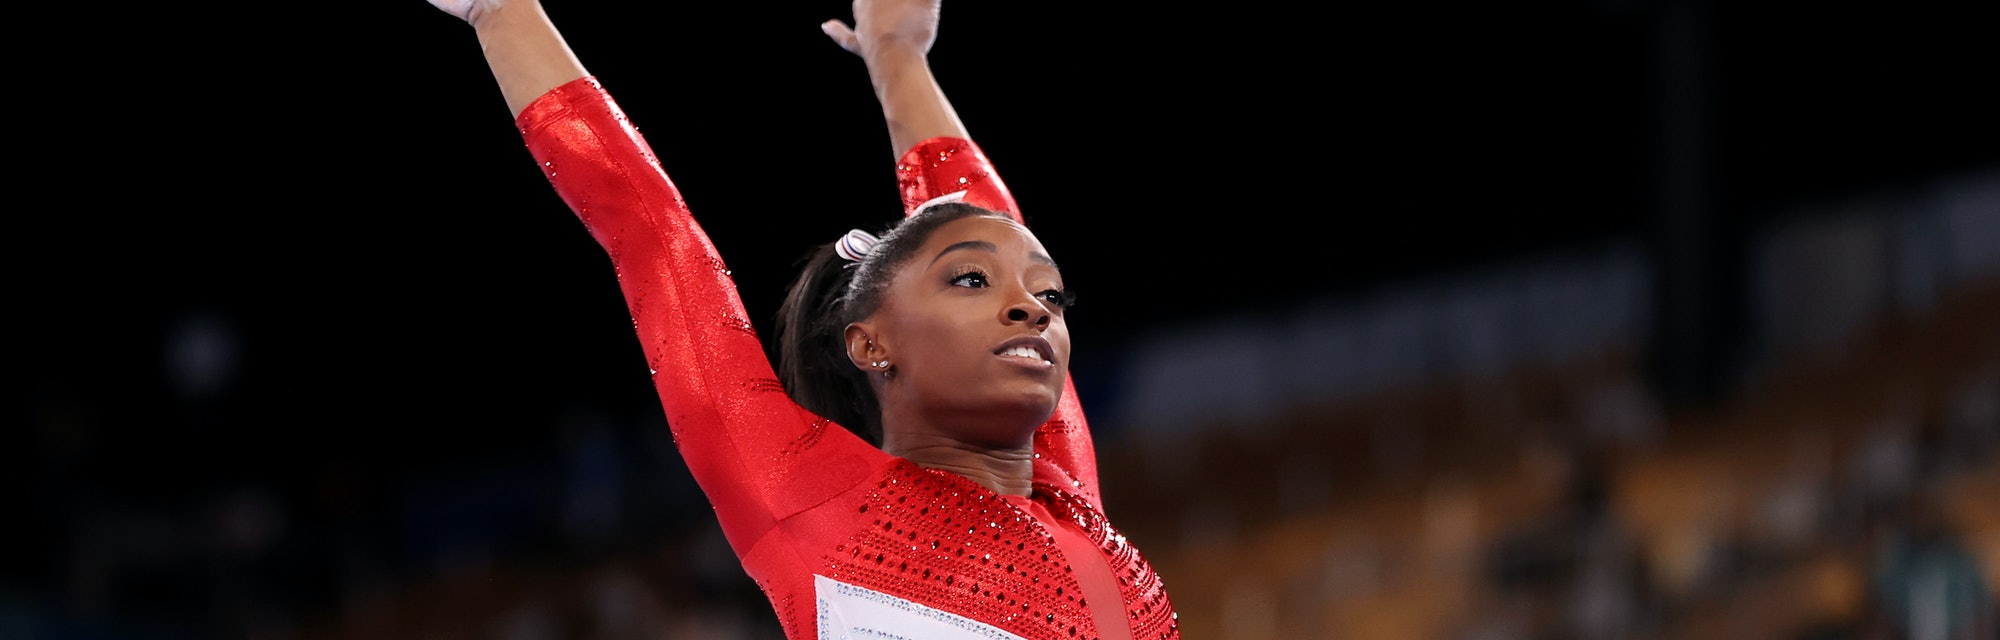 Simone Biles compete at the Tokyo Olympics on July 27.